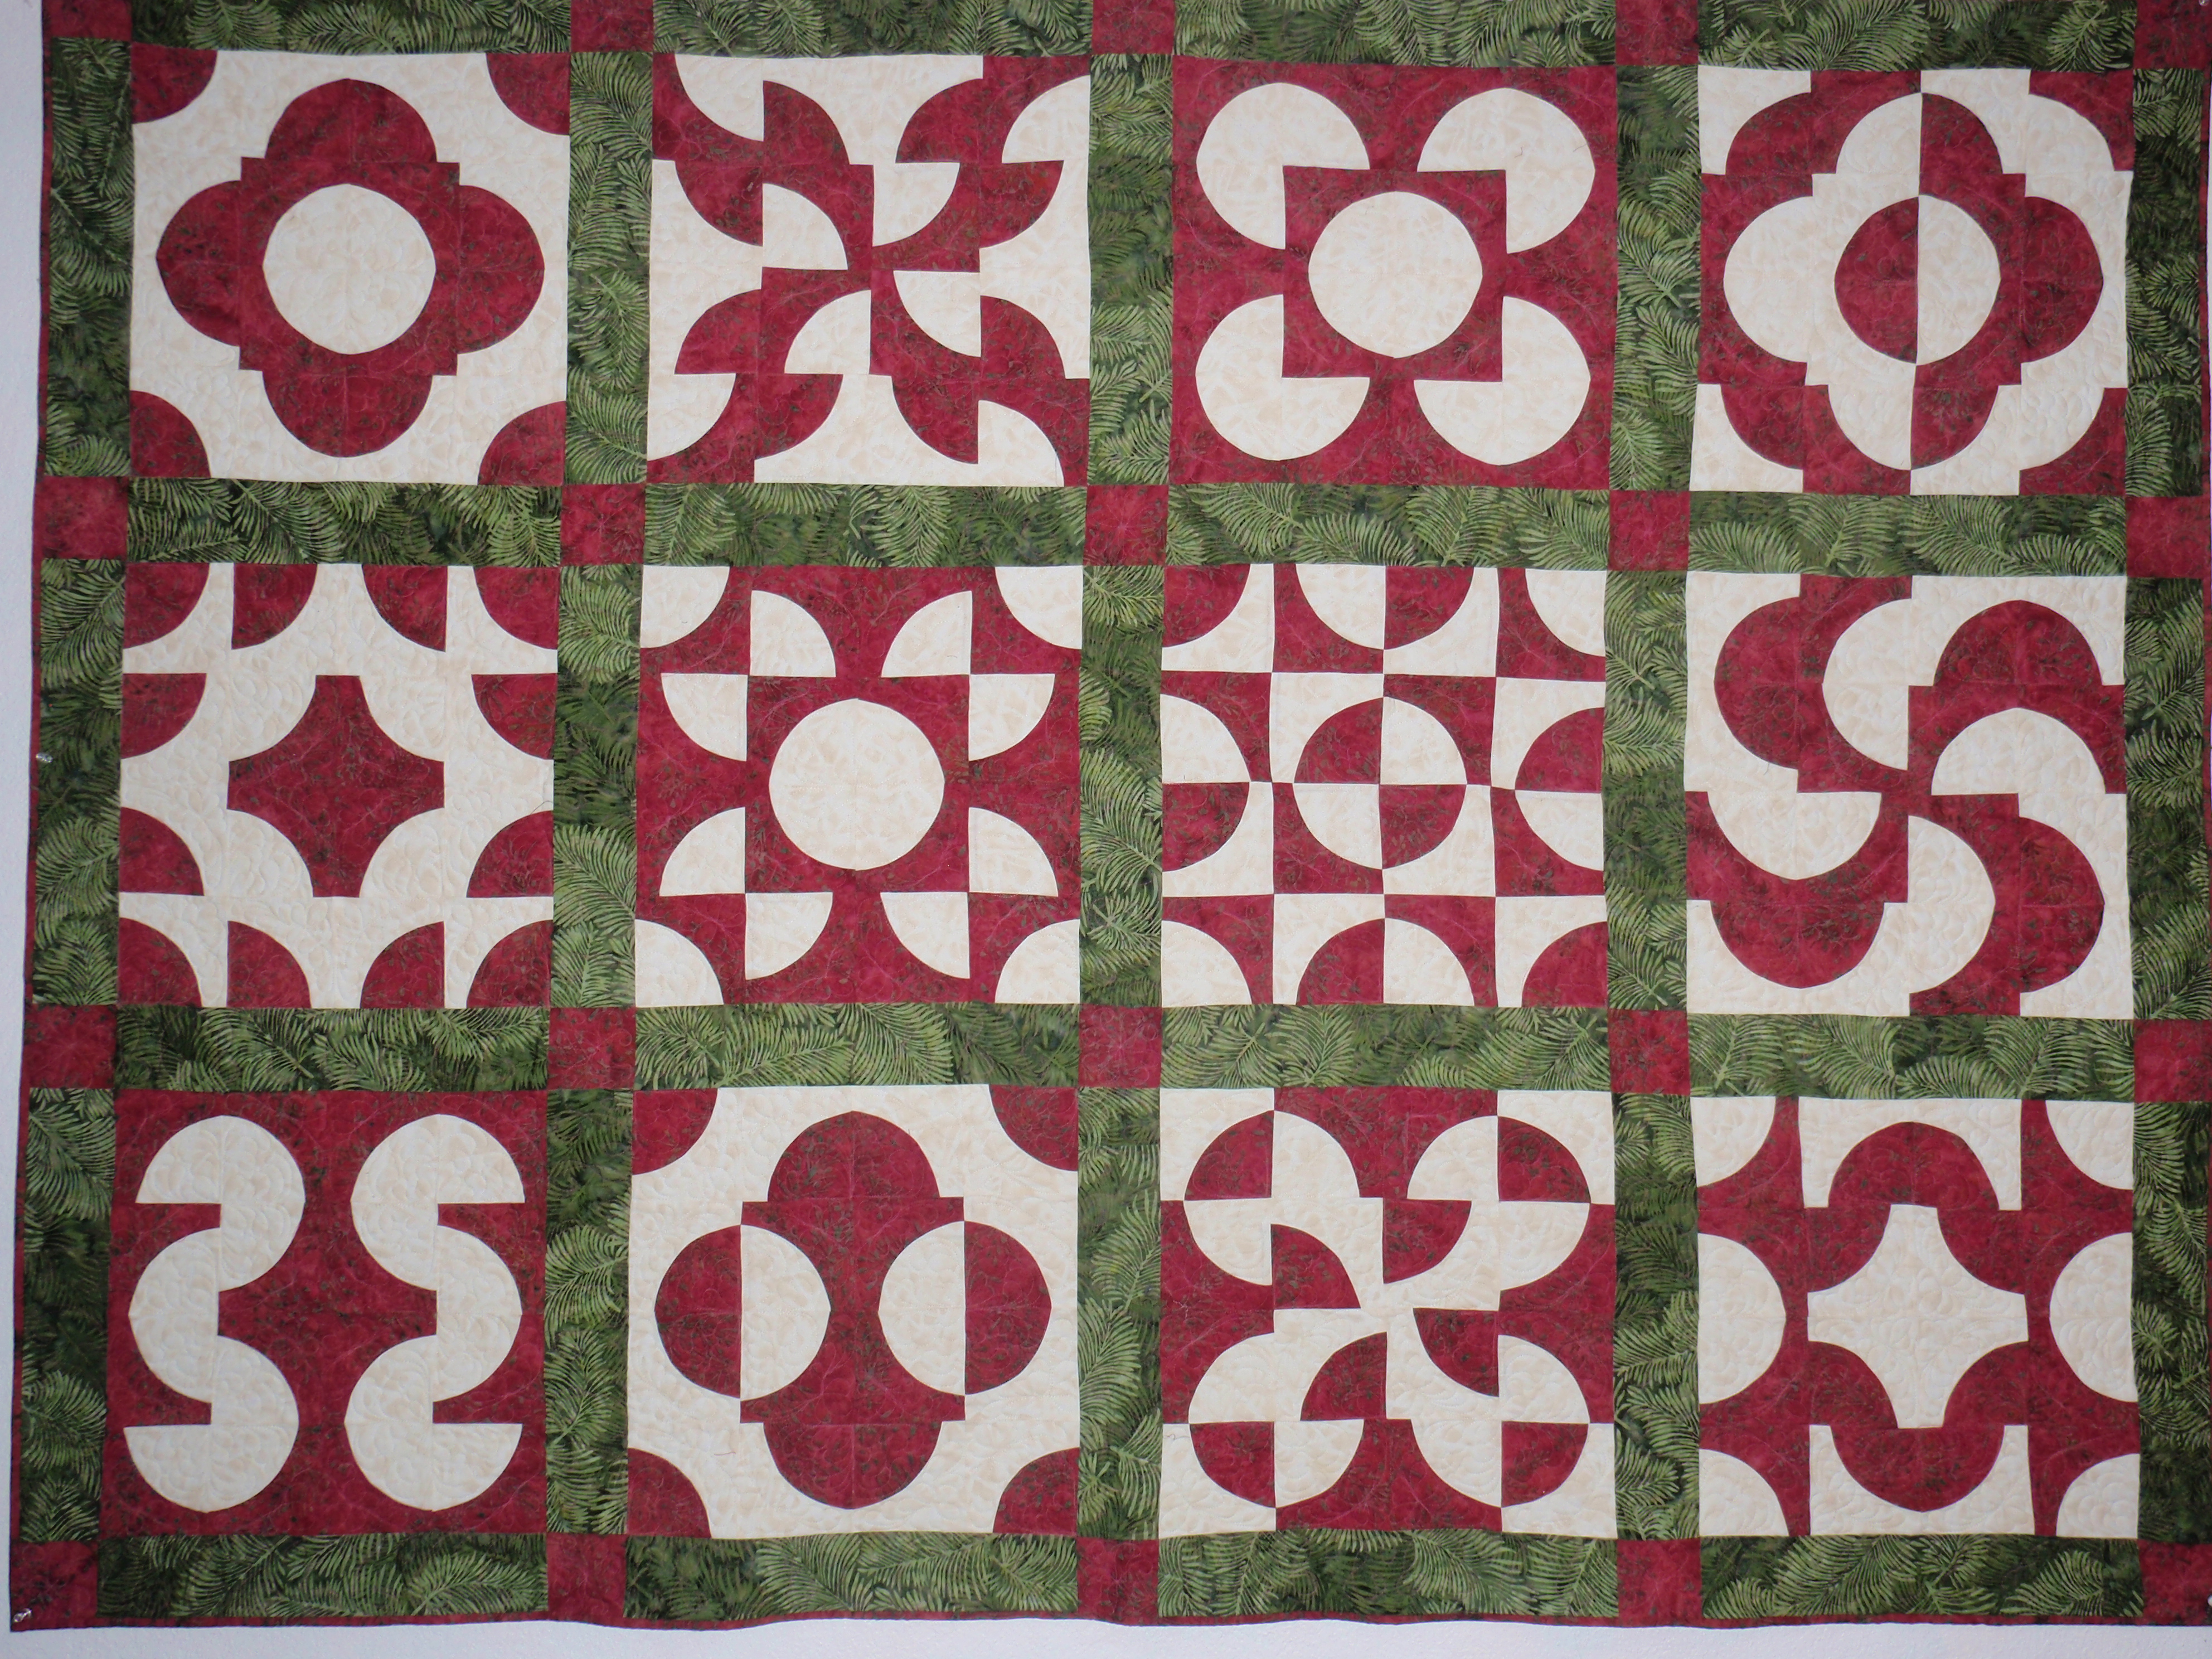 Quilting Template Drunkard S Path : Red and green drunkard s path quilt. Crystal Vision Quilting